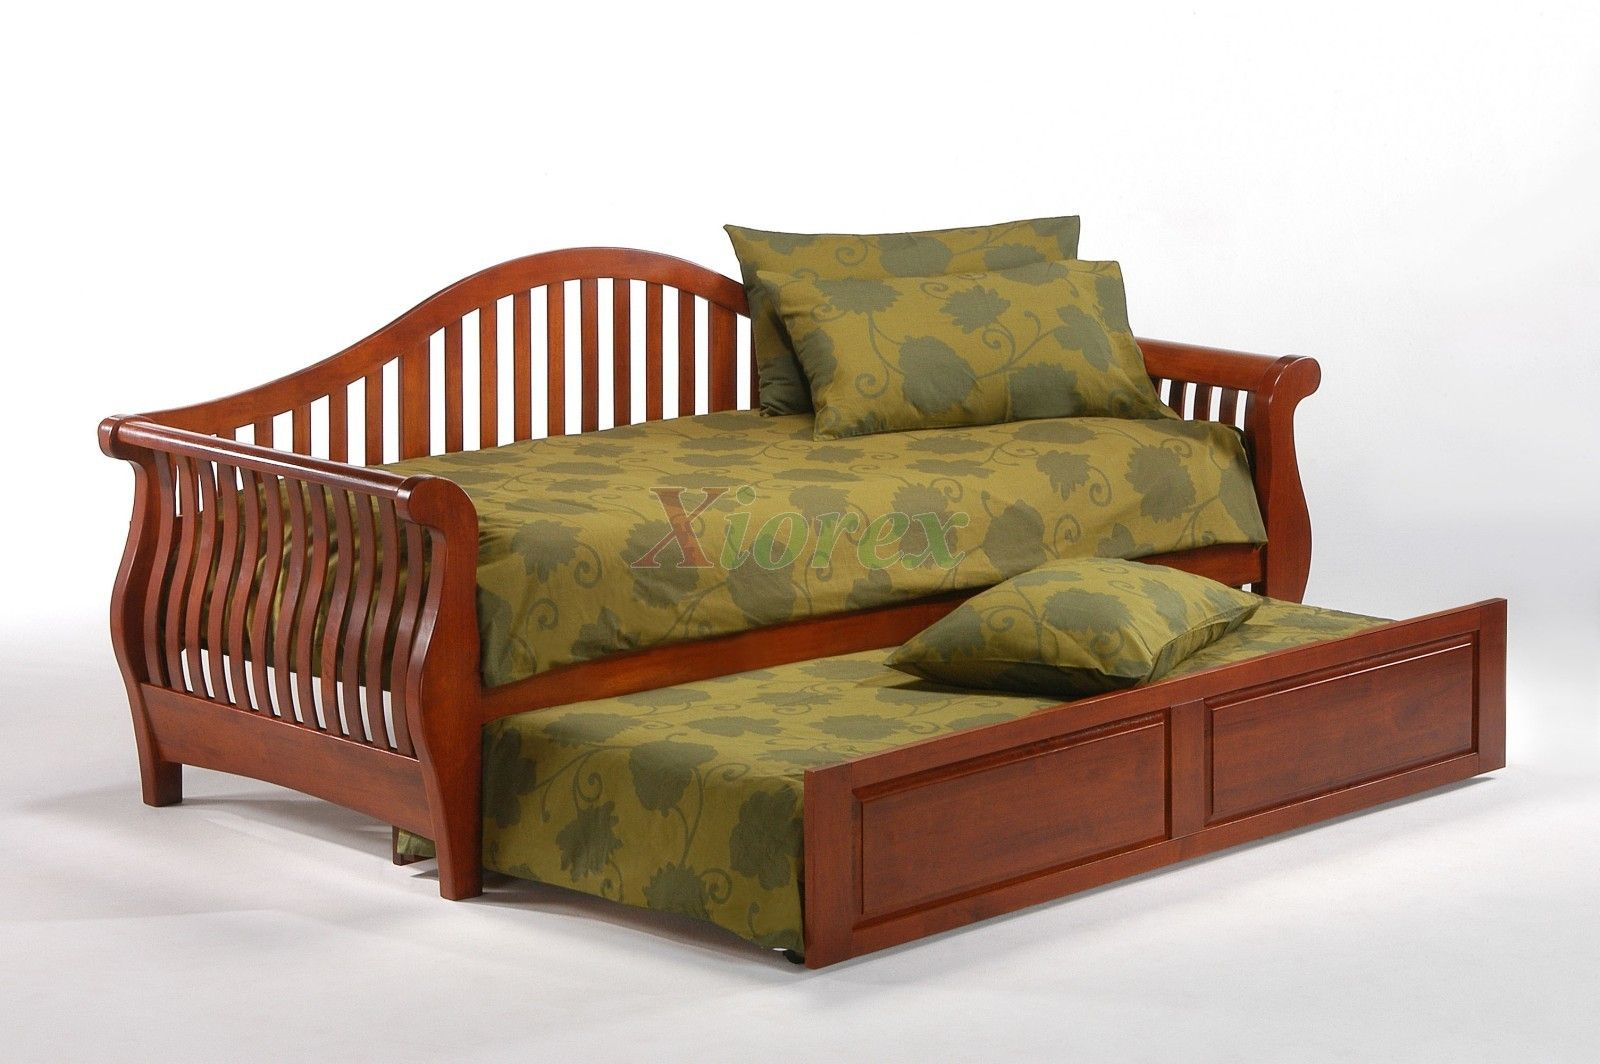 Trundle Daybed Night And Day Nightfall